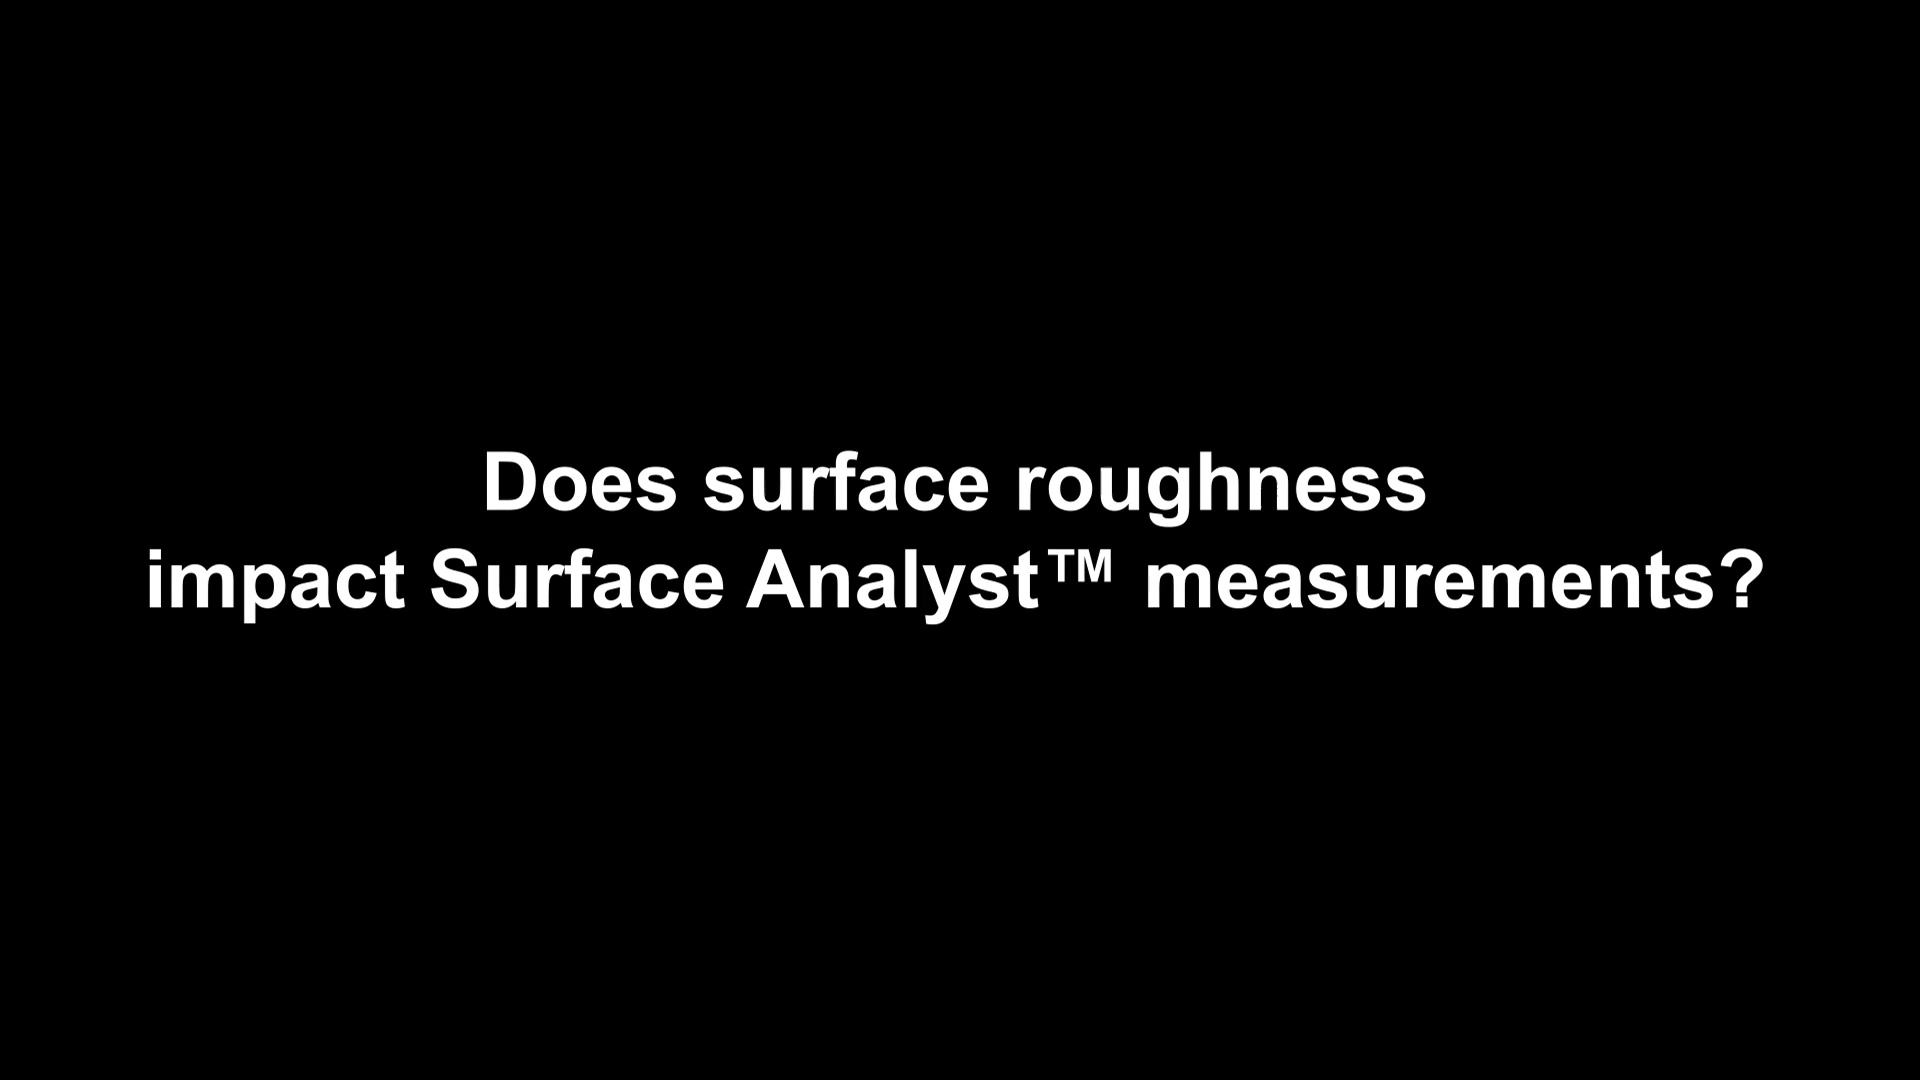 Does Roughness Impact Surface Analyst Measurements